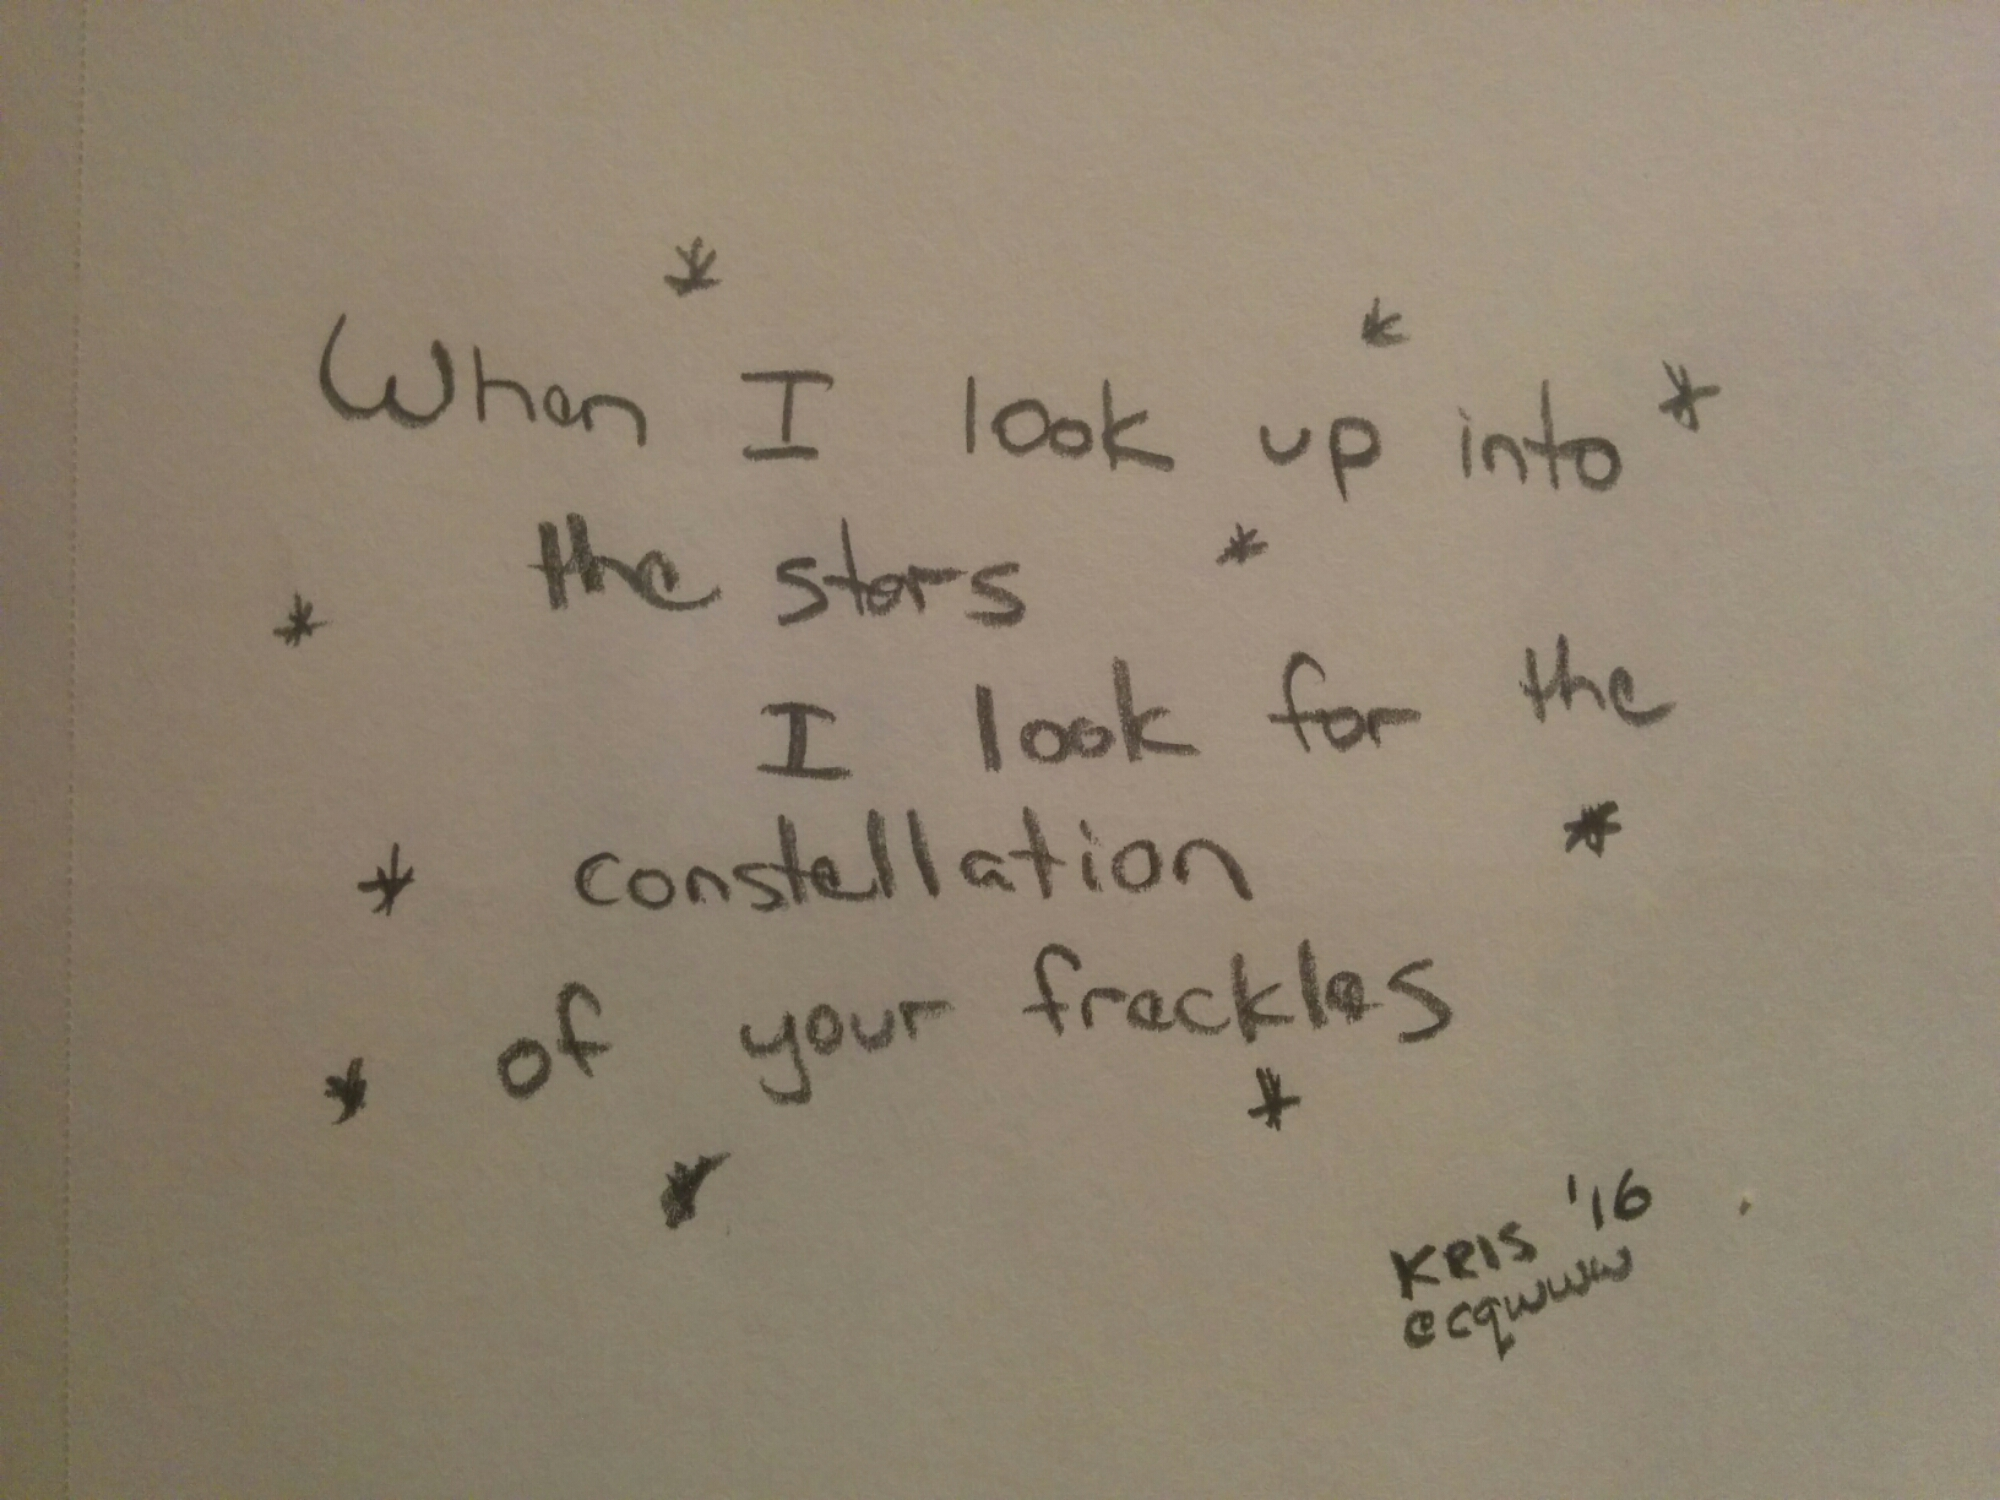 When I look up into the stars, I look for the constellation of your freckles